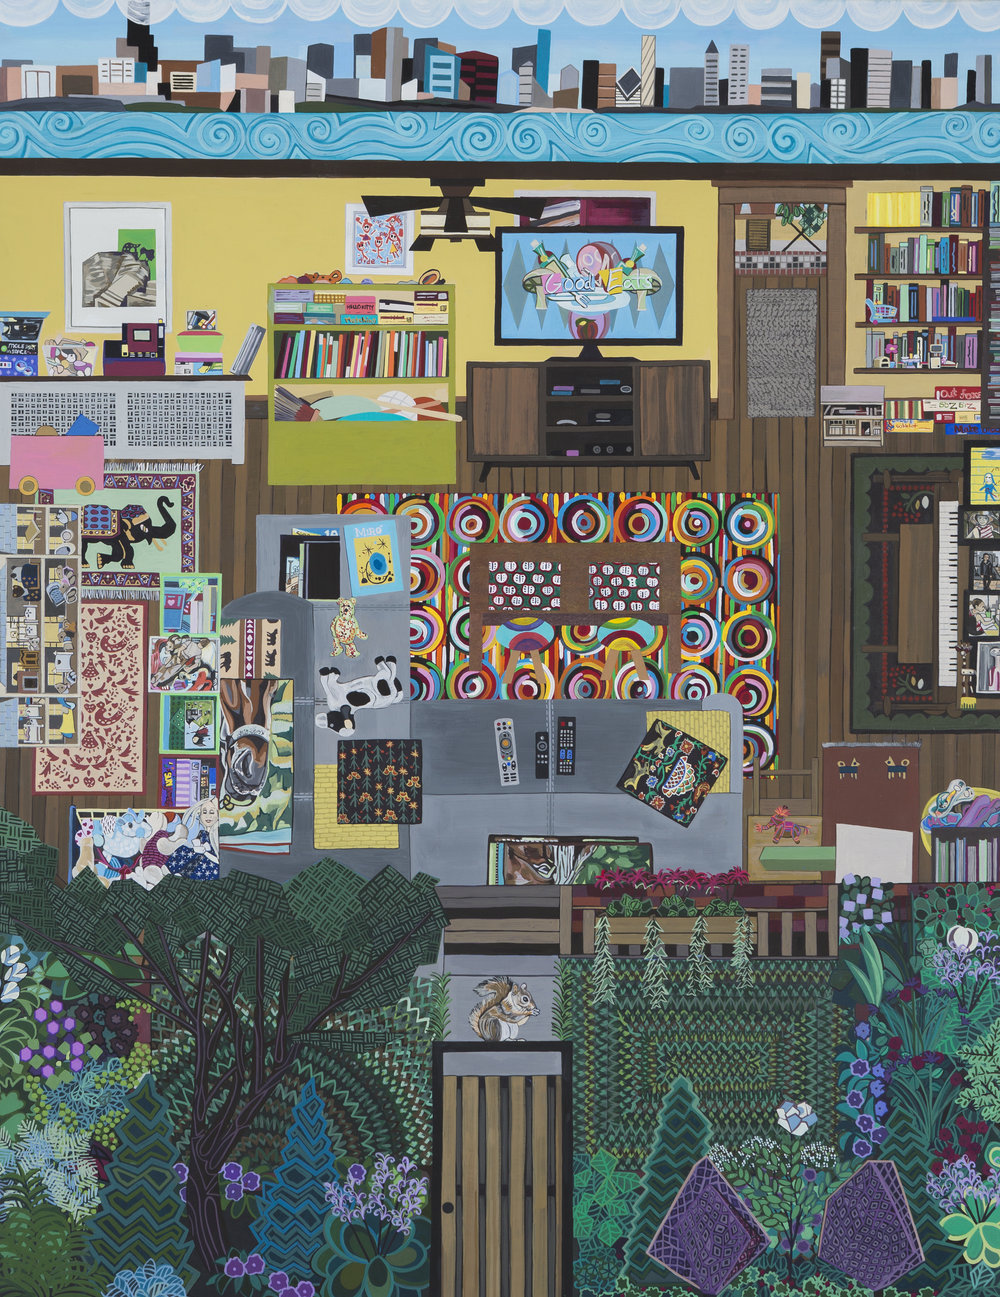 Ann Toebbe  Family Room (Artist) , 2017  gouache, pencil and paper collage on panel  28h x 22w in.